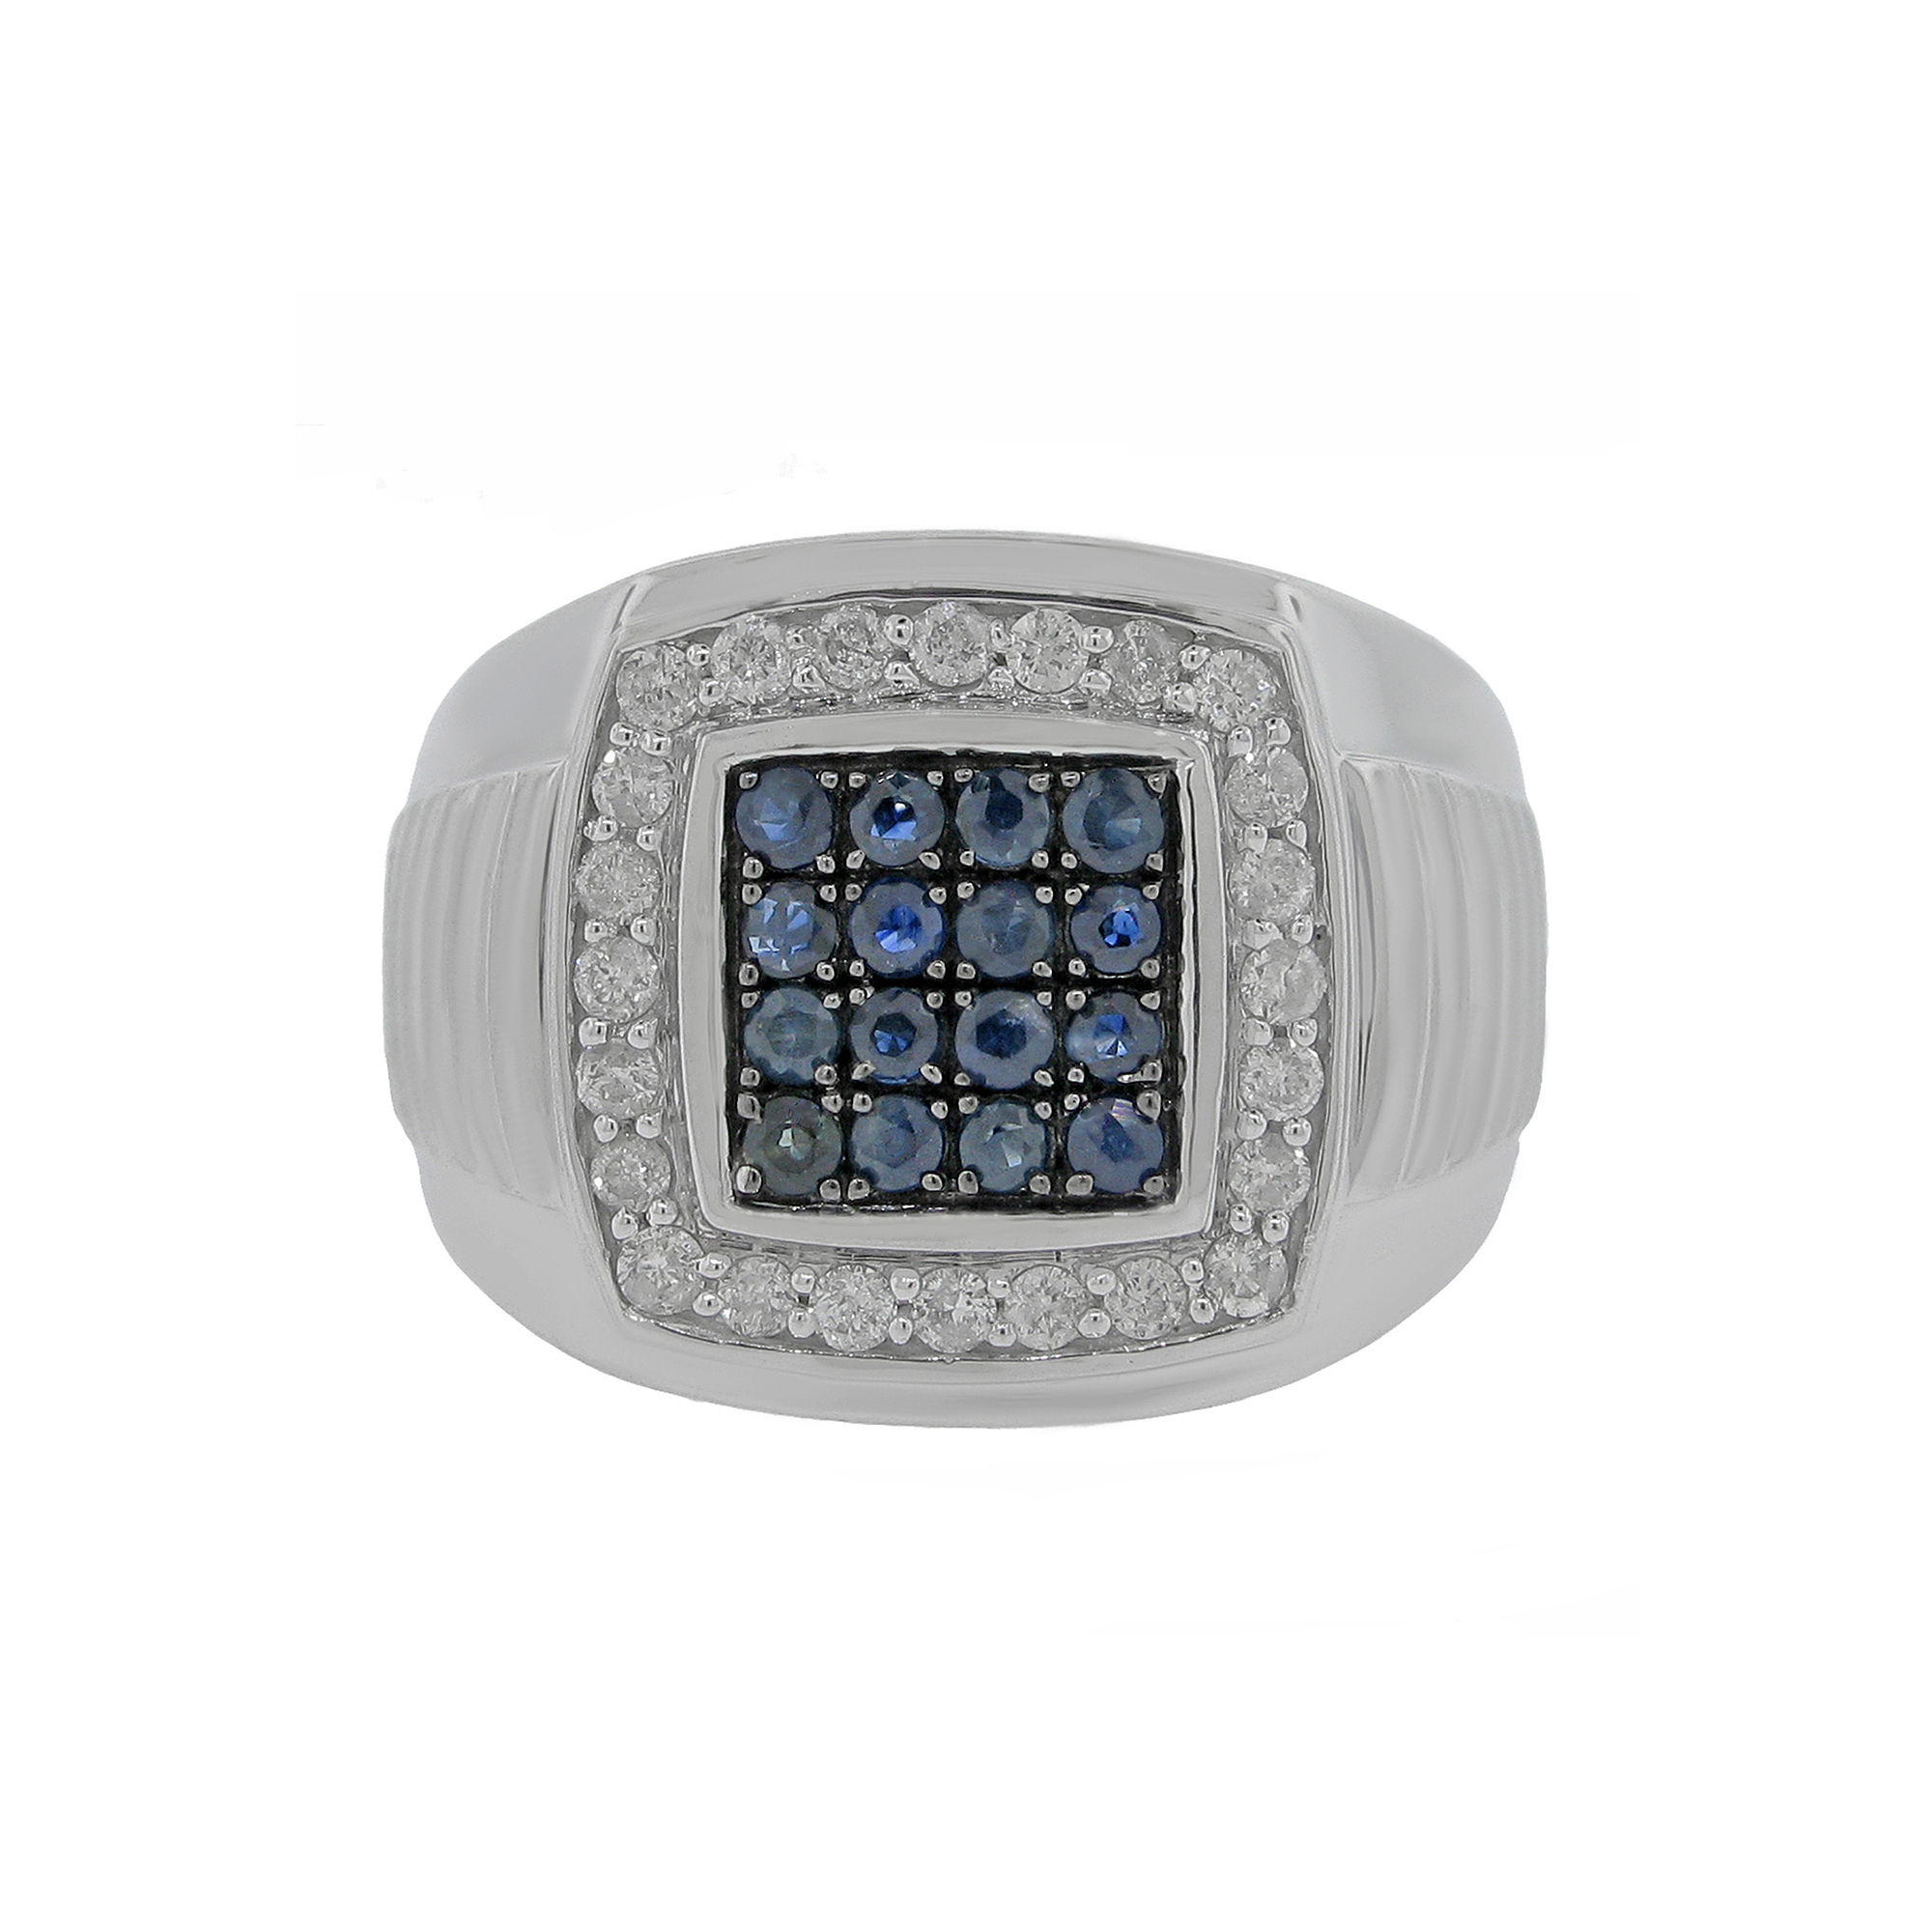 jcpenney mens wedding rings jcpenney jewelry wedding rings jcpenney mens wedding rings gallery